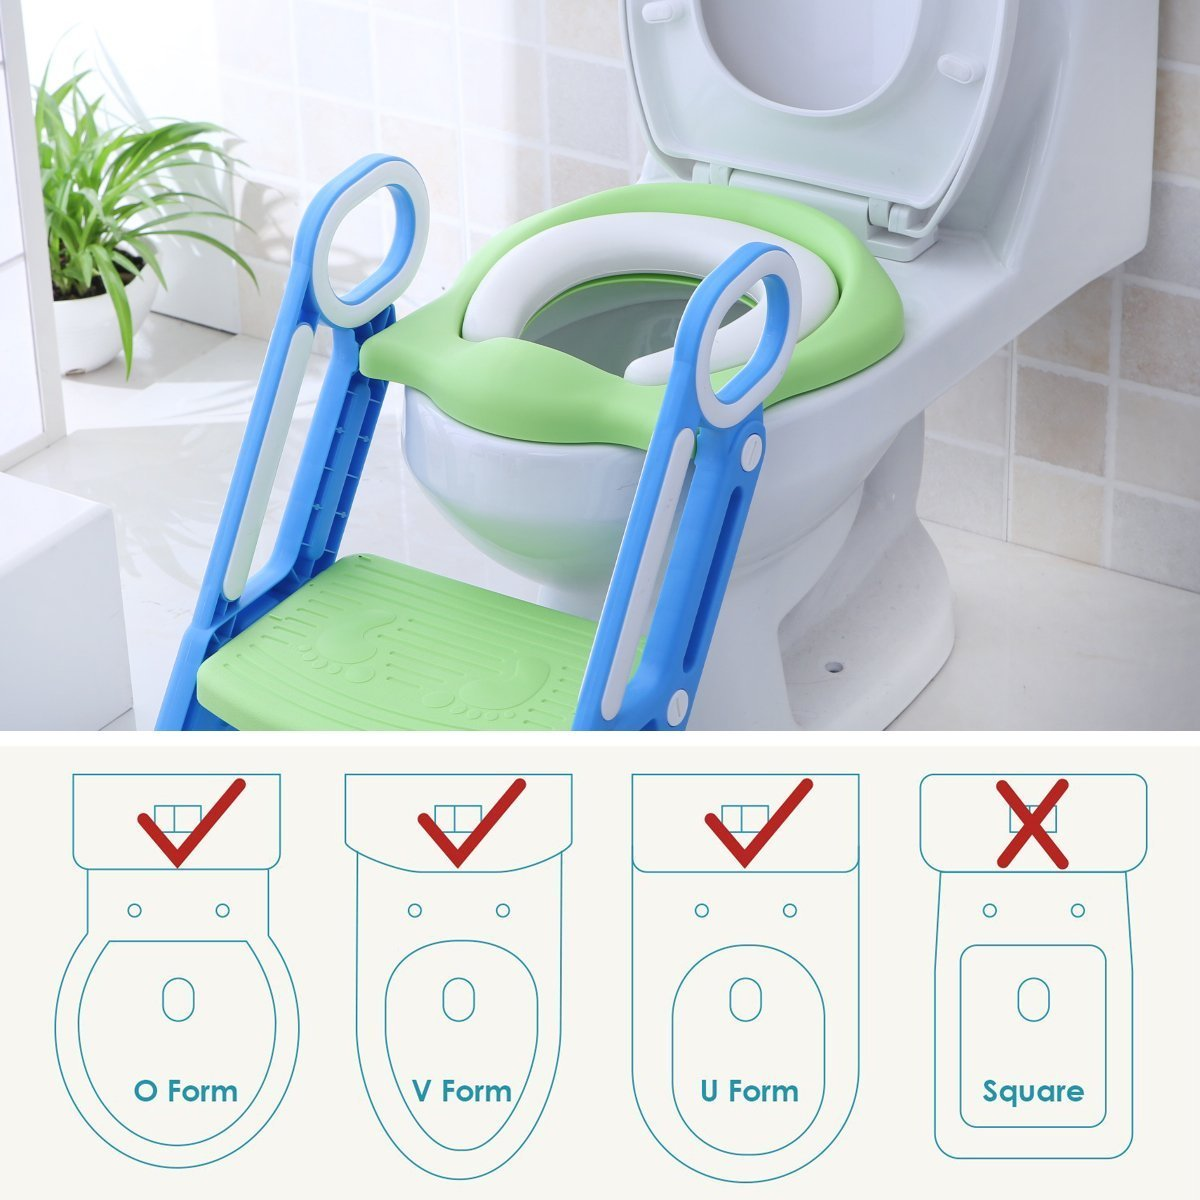 Potty Toilet Trainer Seat with Step Stool Ladder Adjustable Baby Toddler Kid Potty Toilet Seat for Boy and Girl Children's Toilet Training Seat Chair by Mangohood (Image #6)